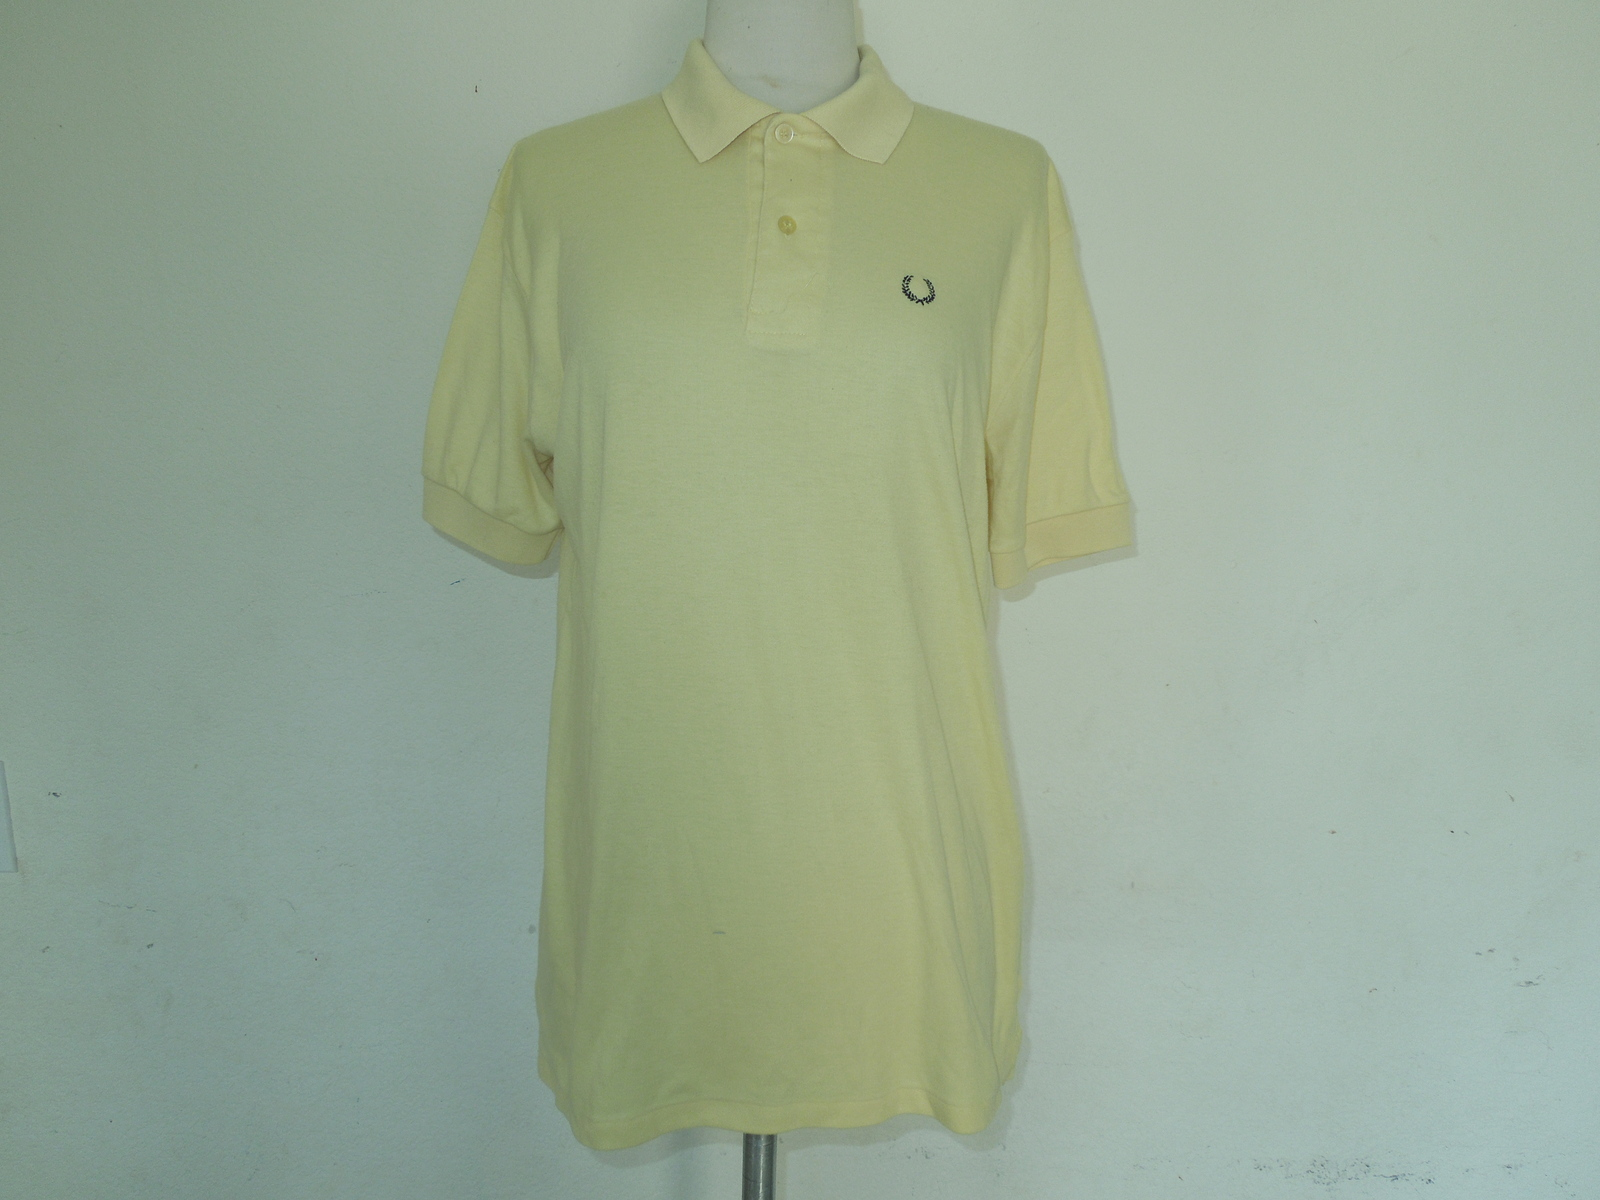 5735c1eab Vintage Fred Perry Polo Shirt Size M and similar items. Dscn9381